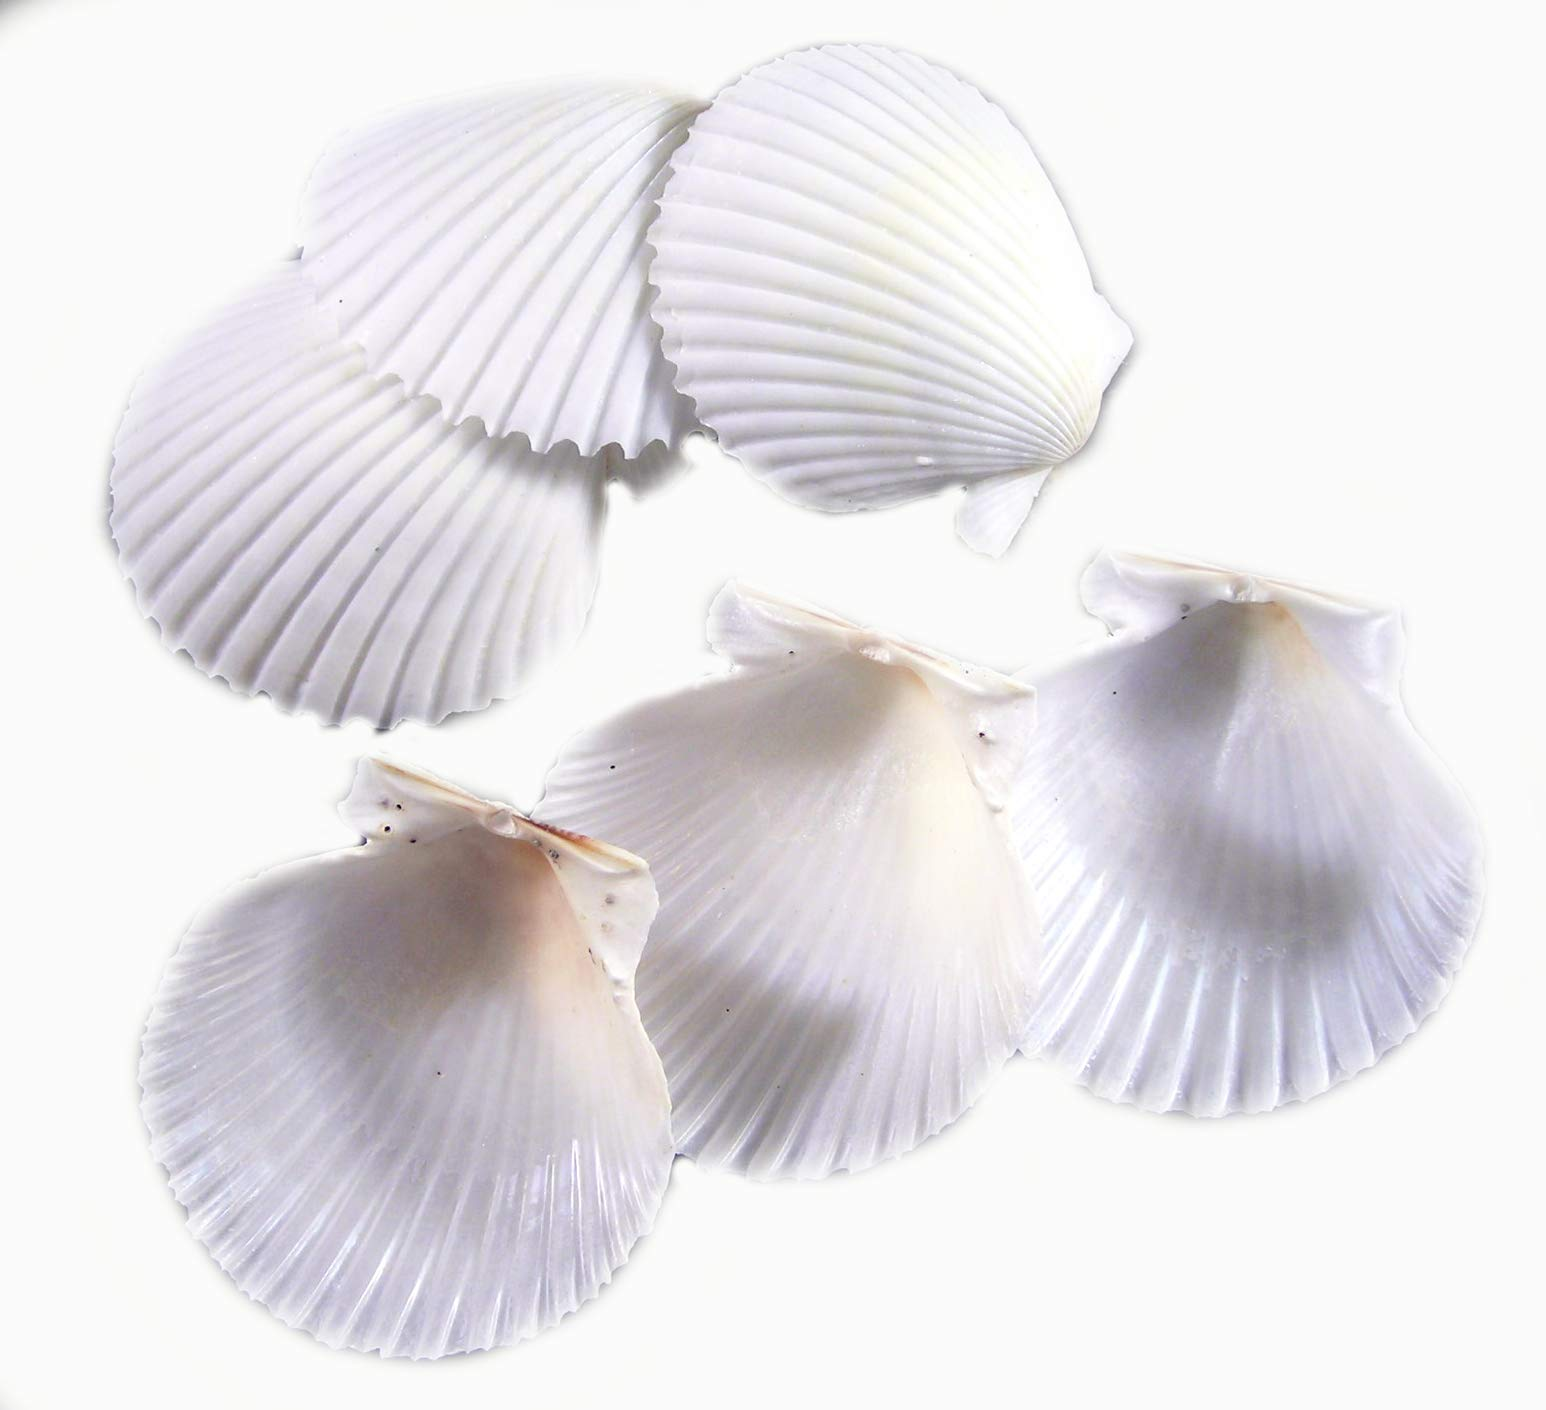 Set of 100 White Florida Scallop Shells (about 2'') Seashells for Beach Wedding Decor and Ocean Crafts